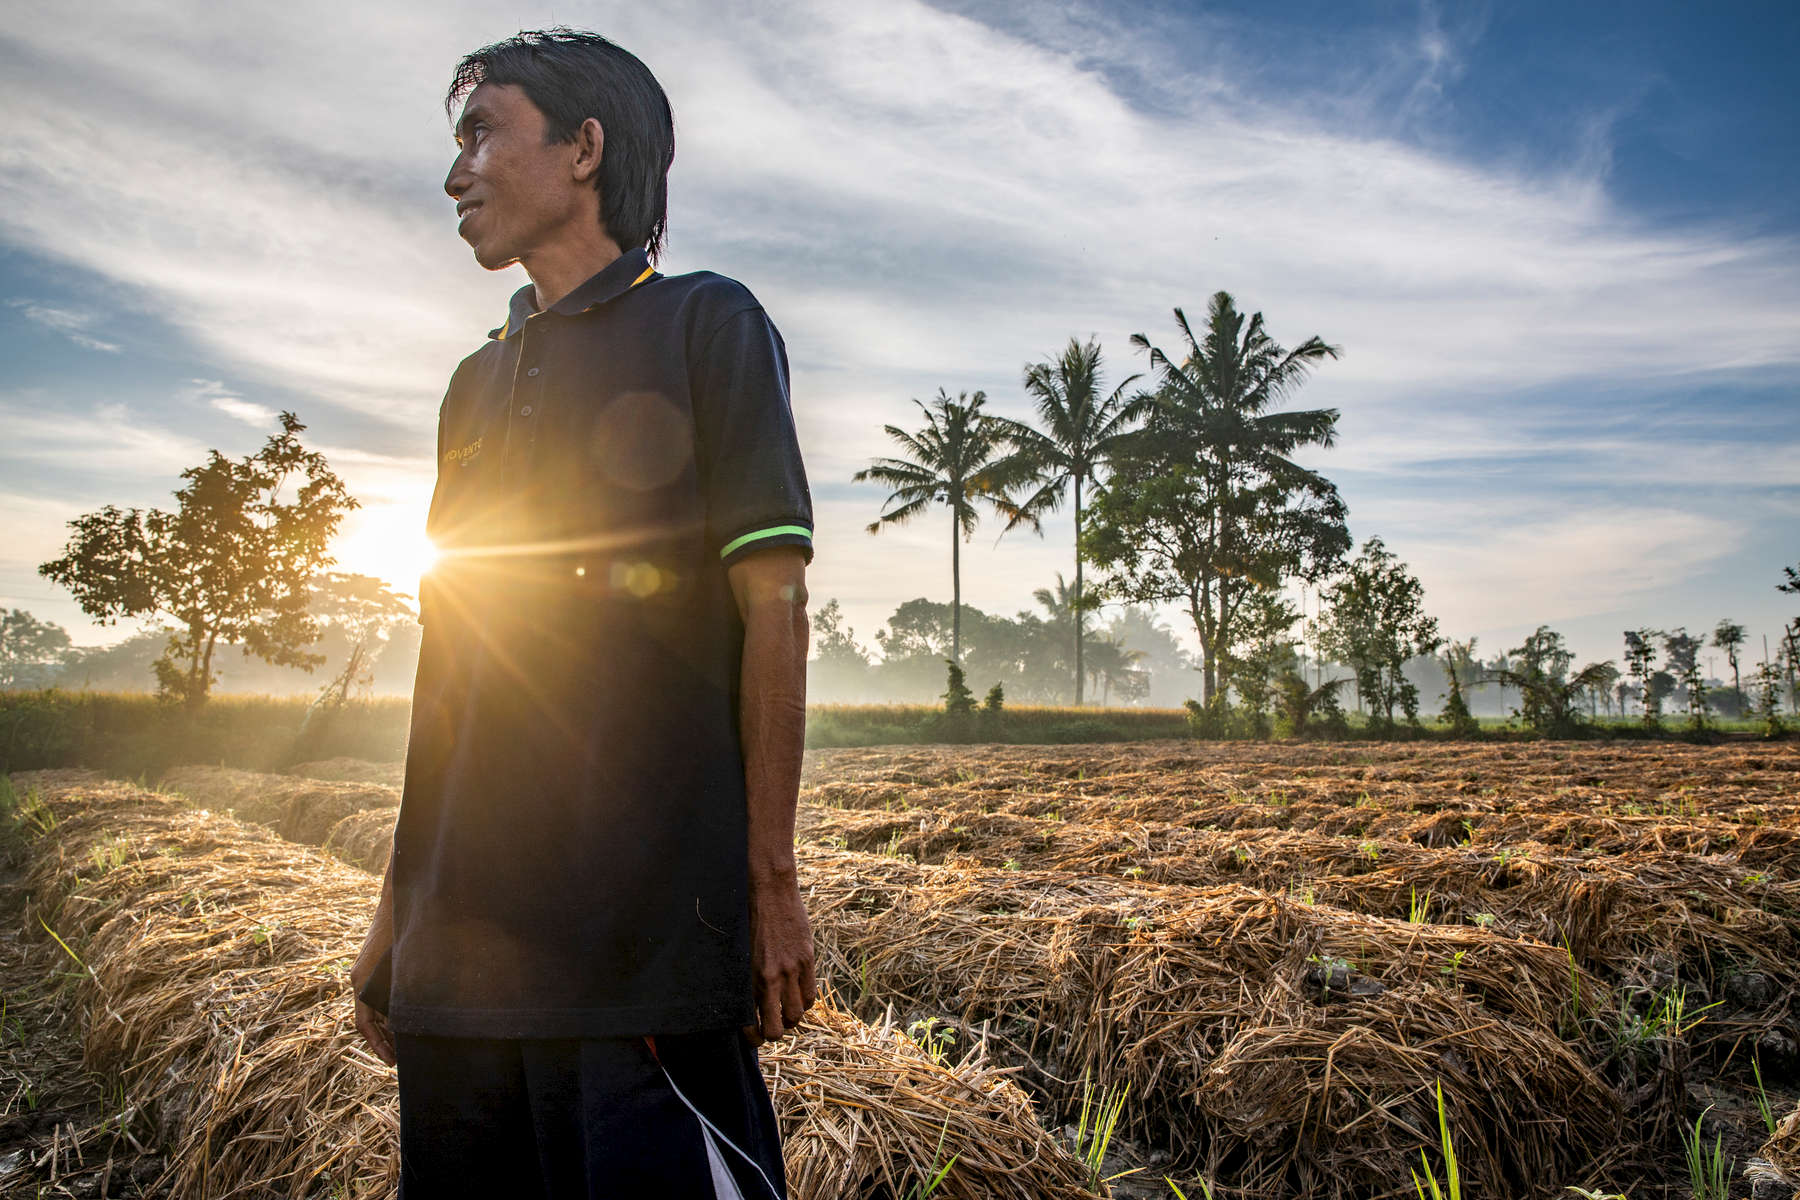 """Pak Sahwil, 42,  stands in his vegetable fields. He is a rice farmer on Lombok in eastern Indonesia. Mercy Corps is helping him and the 60 other farmers in his farmers group learn how to grow stronger, heartier crops in the face of worsening drought.Lombok is extremely vulnerable to climate change, with shorter rainy seasons and longer dry seasons that put precious harvests at risk.A lifelong farmer on Lombok—and the son of rice farmers—Pak Sahwil can recall the dry seasons as far back as 15 years. As he gets older, he worries about longer droughts causing harvest failure. """"Sometimes, climate change causes failure. What I feel the most is a long dry season,"""" he says.On Lombok, the dry season is now regularly starting a month earlier and lasting a month longer, leading to dangerous water shortages for farmers. """"I'm very worried. Not just for next year, but even for this year. Accessing water is becoming difficult,"""" Pak Sahwil says.Mercy Corps has helped Pak Sahwil and the farmers group he mentors endure drought with better farming practices and business training. """"Our objective as farmers is to increase our production. Because the Mercy Corps mission is the same as ours, we cooperate. This is a good opportunity, in my opinion,"""" he says.Mercy Corps trains farmers like Pak Sahwil to organize local farmers groups where farmers work together and support each other. They also learn to start agribusinesses to supplement their income.Pak Sahwil also works for the governmental agriculture agency. When he saw how Mercy Corps was improving local farmers, he extended the partnership to other districts. """"Because Mercy Corps is successful with my group, I share the knowledge with the group in this village,"""" he says."""